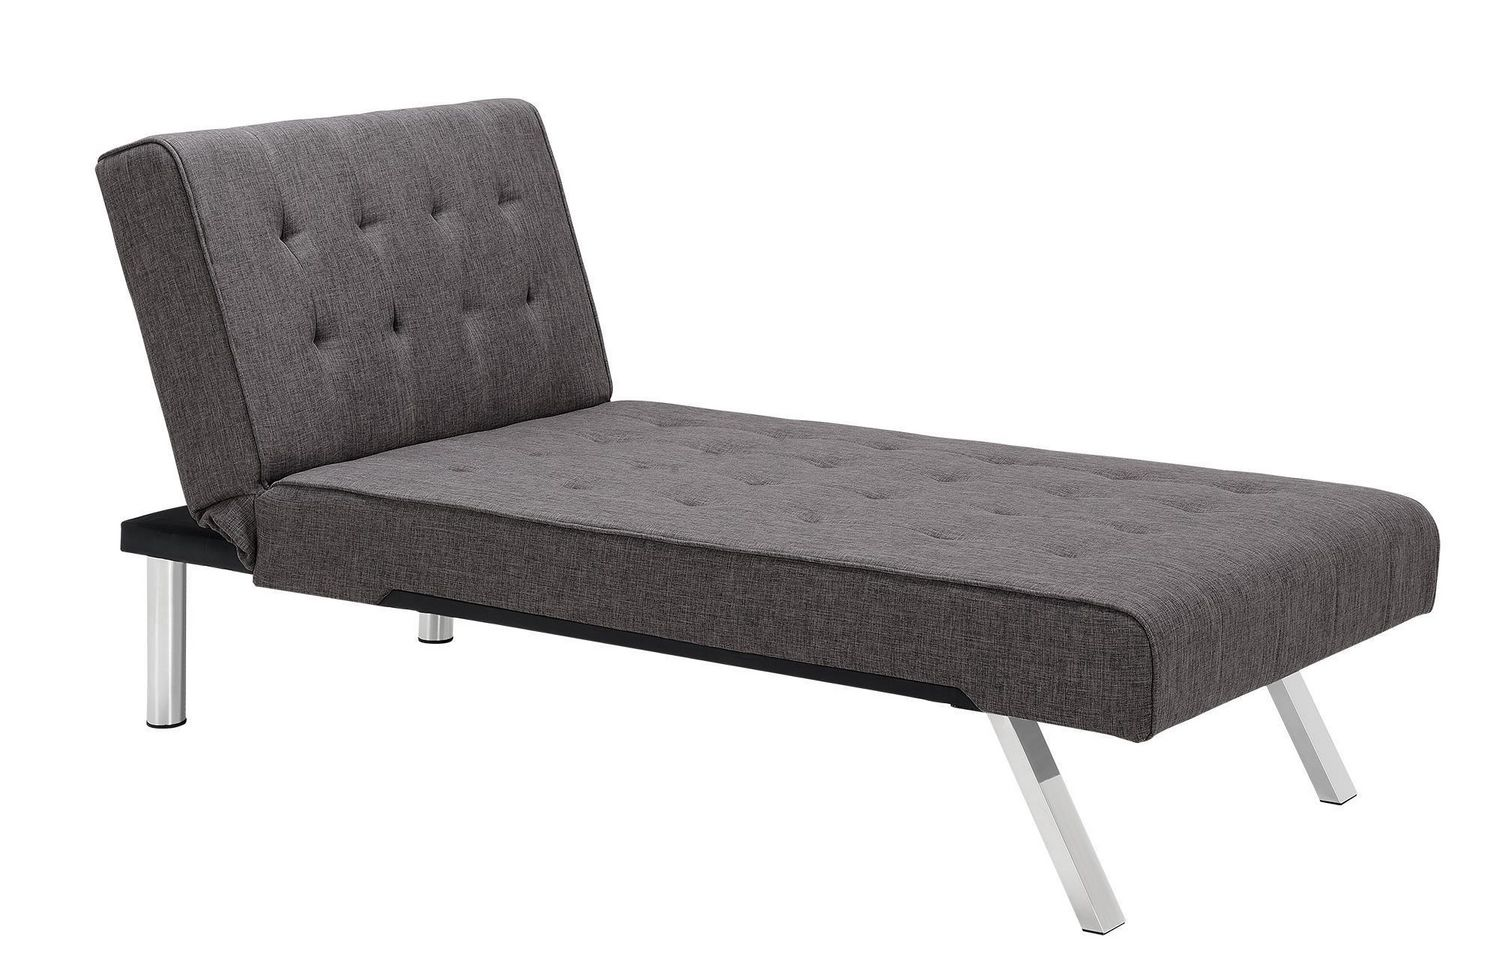 size emily living merax full futon awfulle large with sofa barcelona new ideas convertible lounge room of chaise